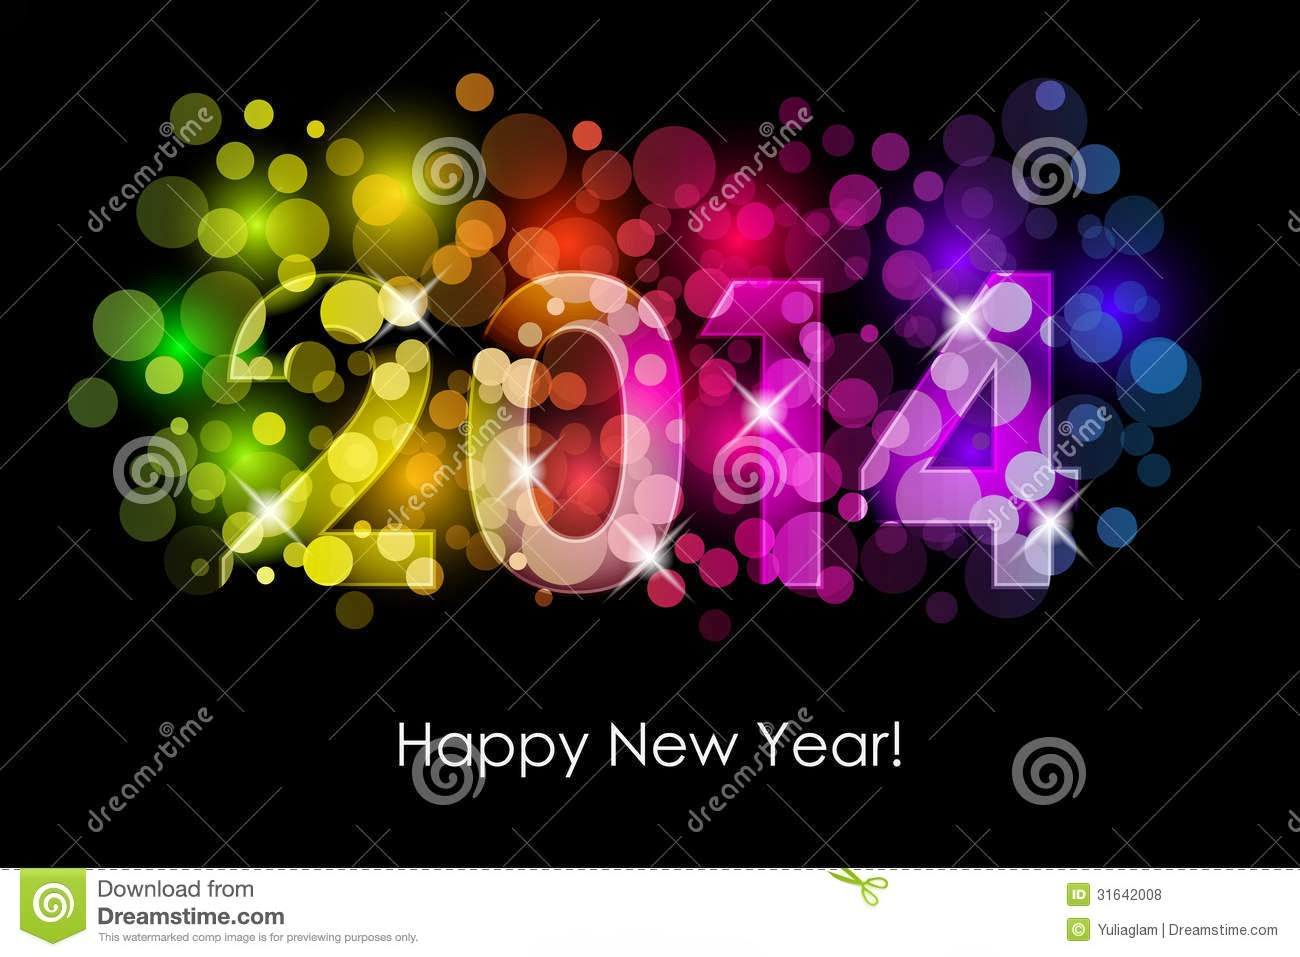 Beautiful Happy New Year 2014 Wallpaper for Greetings, FB